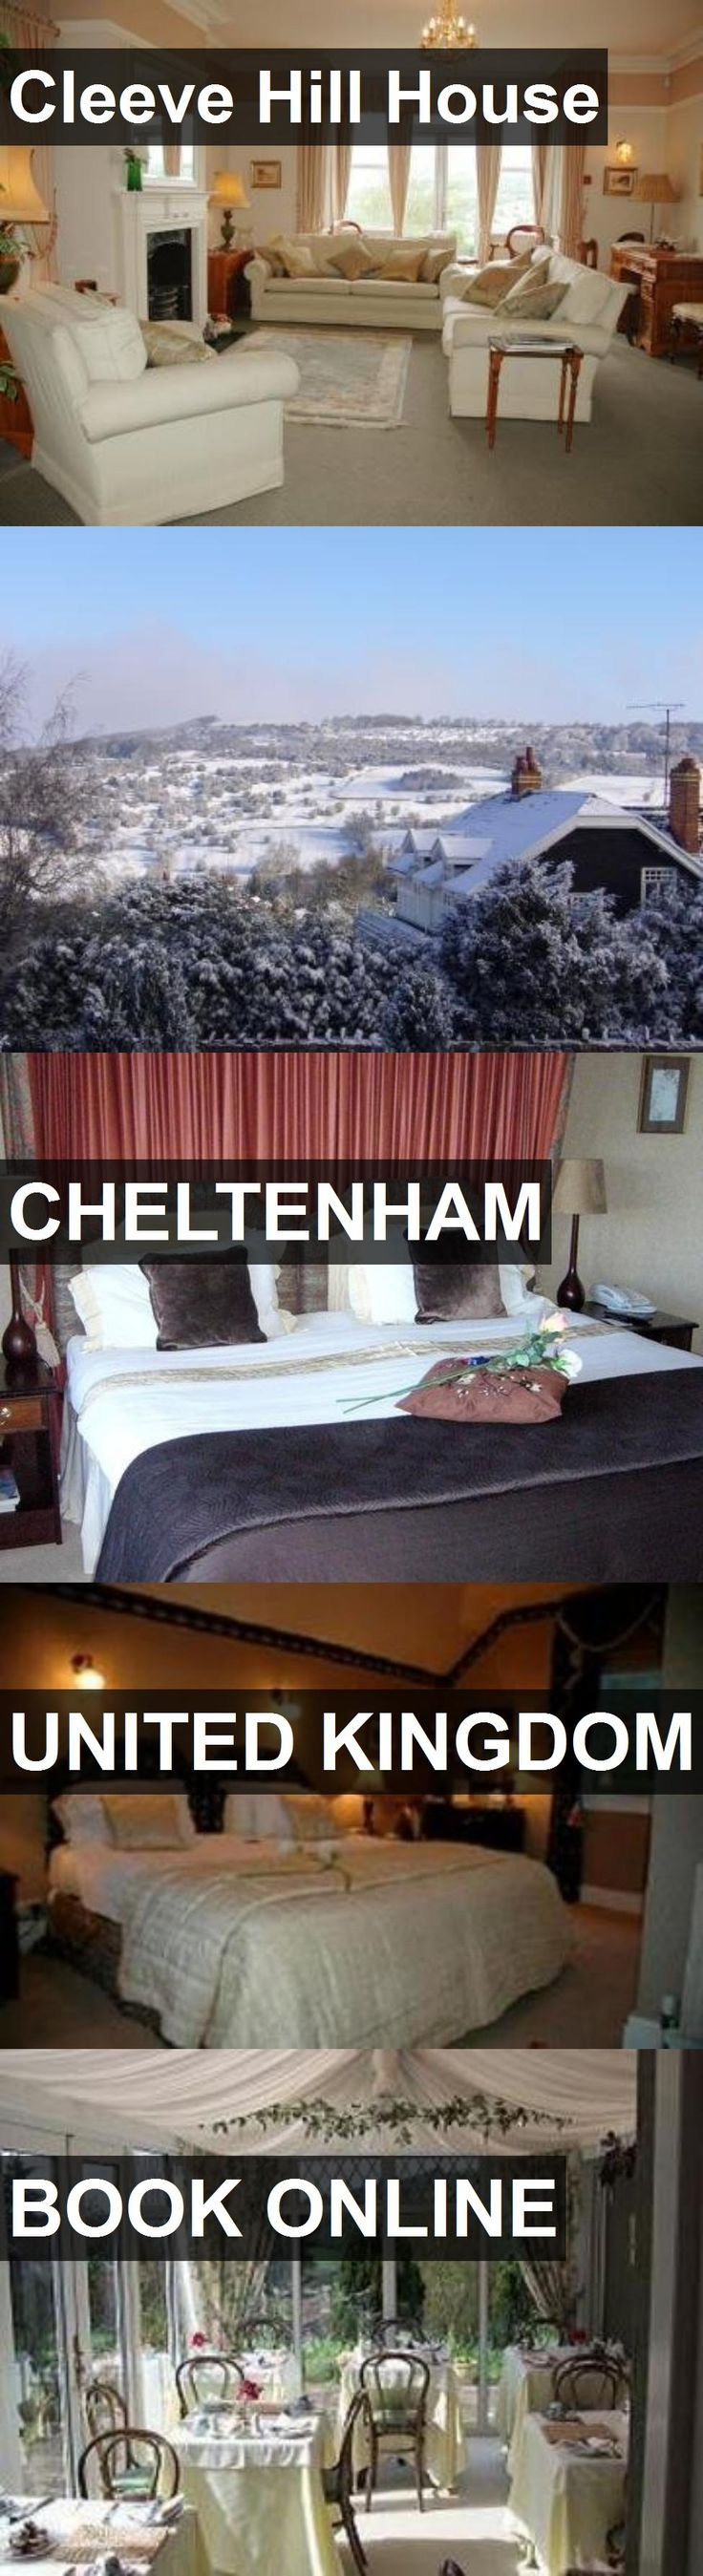 Hotel Cleeve Hill House in Cheltenham, United Kingdom. For more information, photos, reviews and best prices please follow the link. #UnitedKingdom #Cheltenham #travel #vacation #hotel